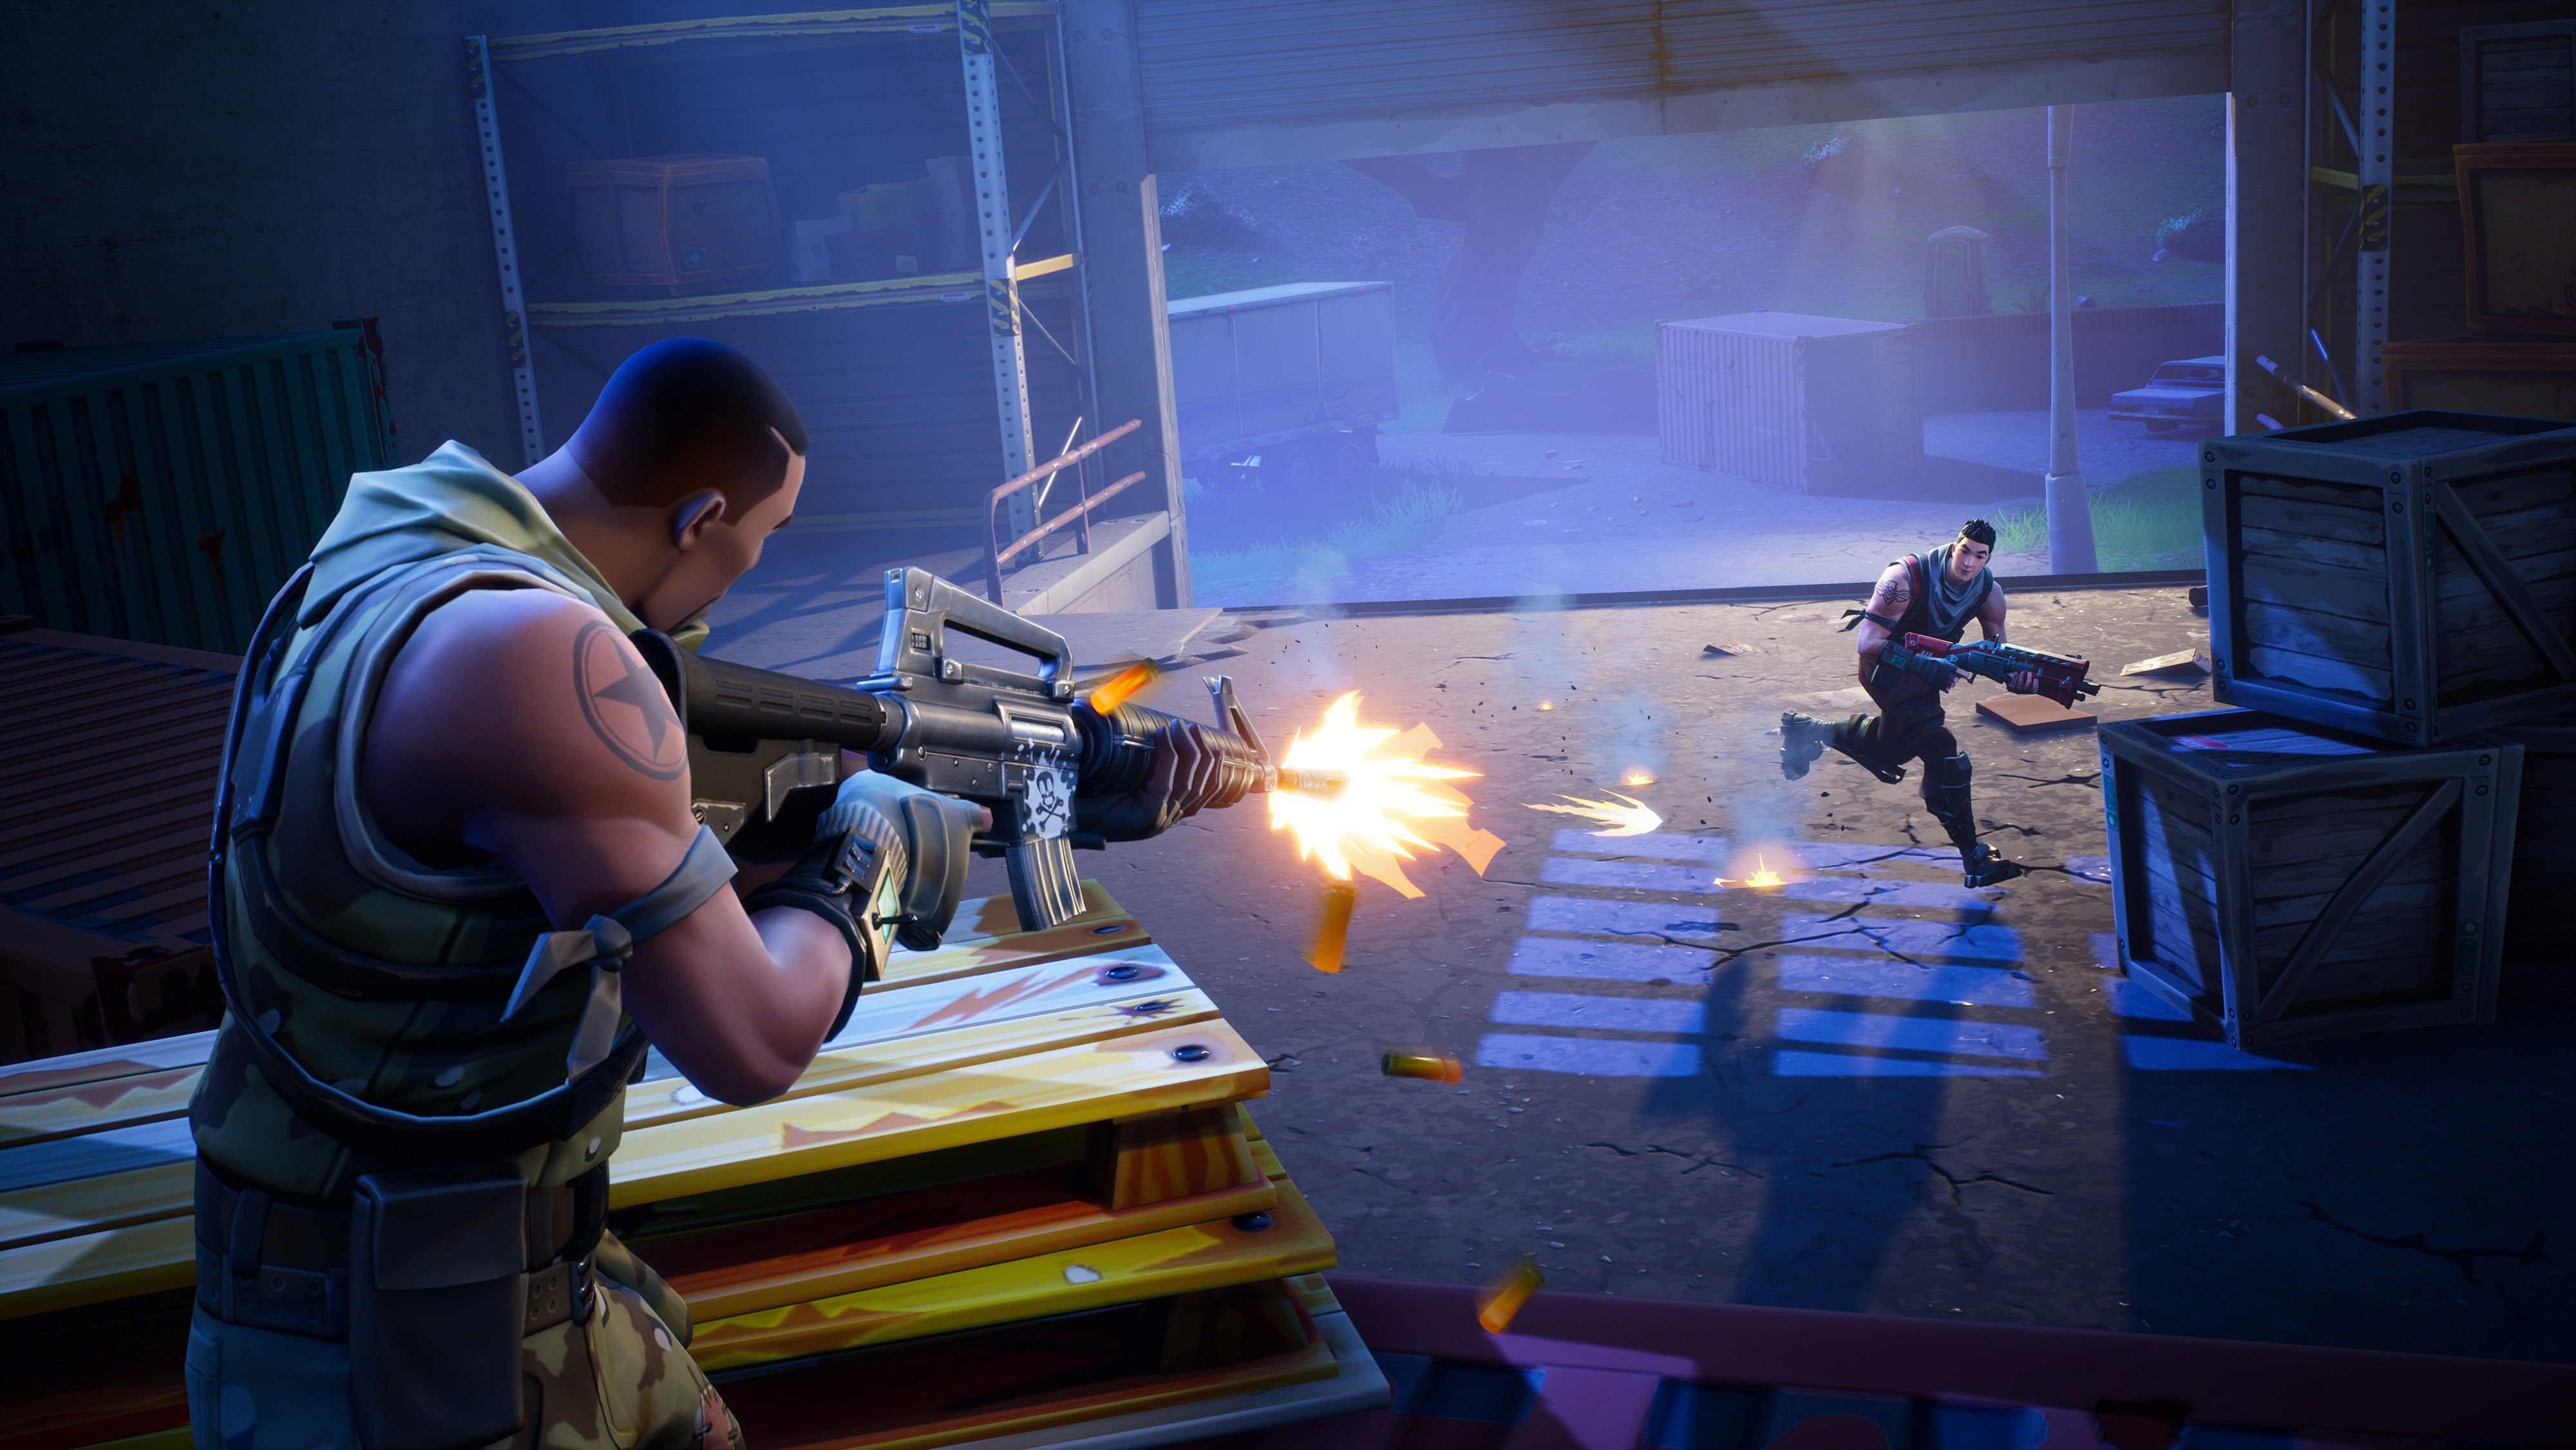 Fortnite Plans To Add Bots To Help Players Improve The